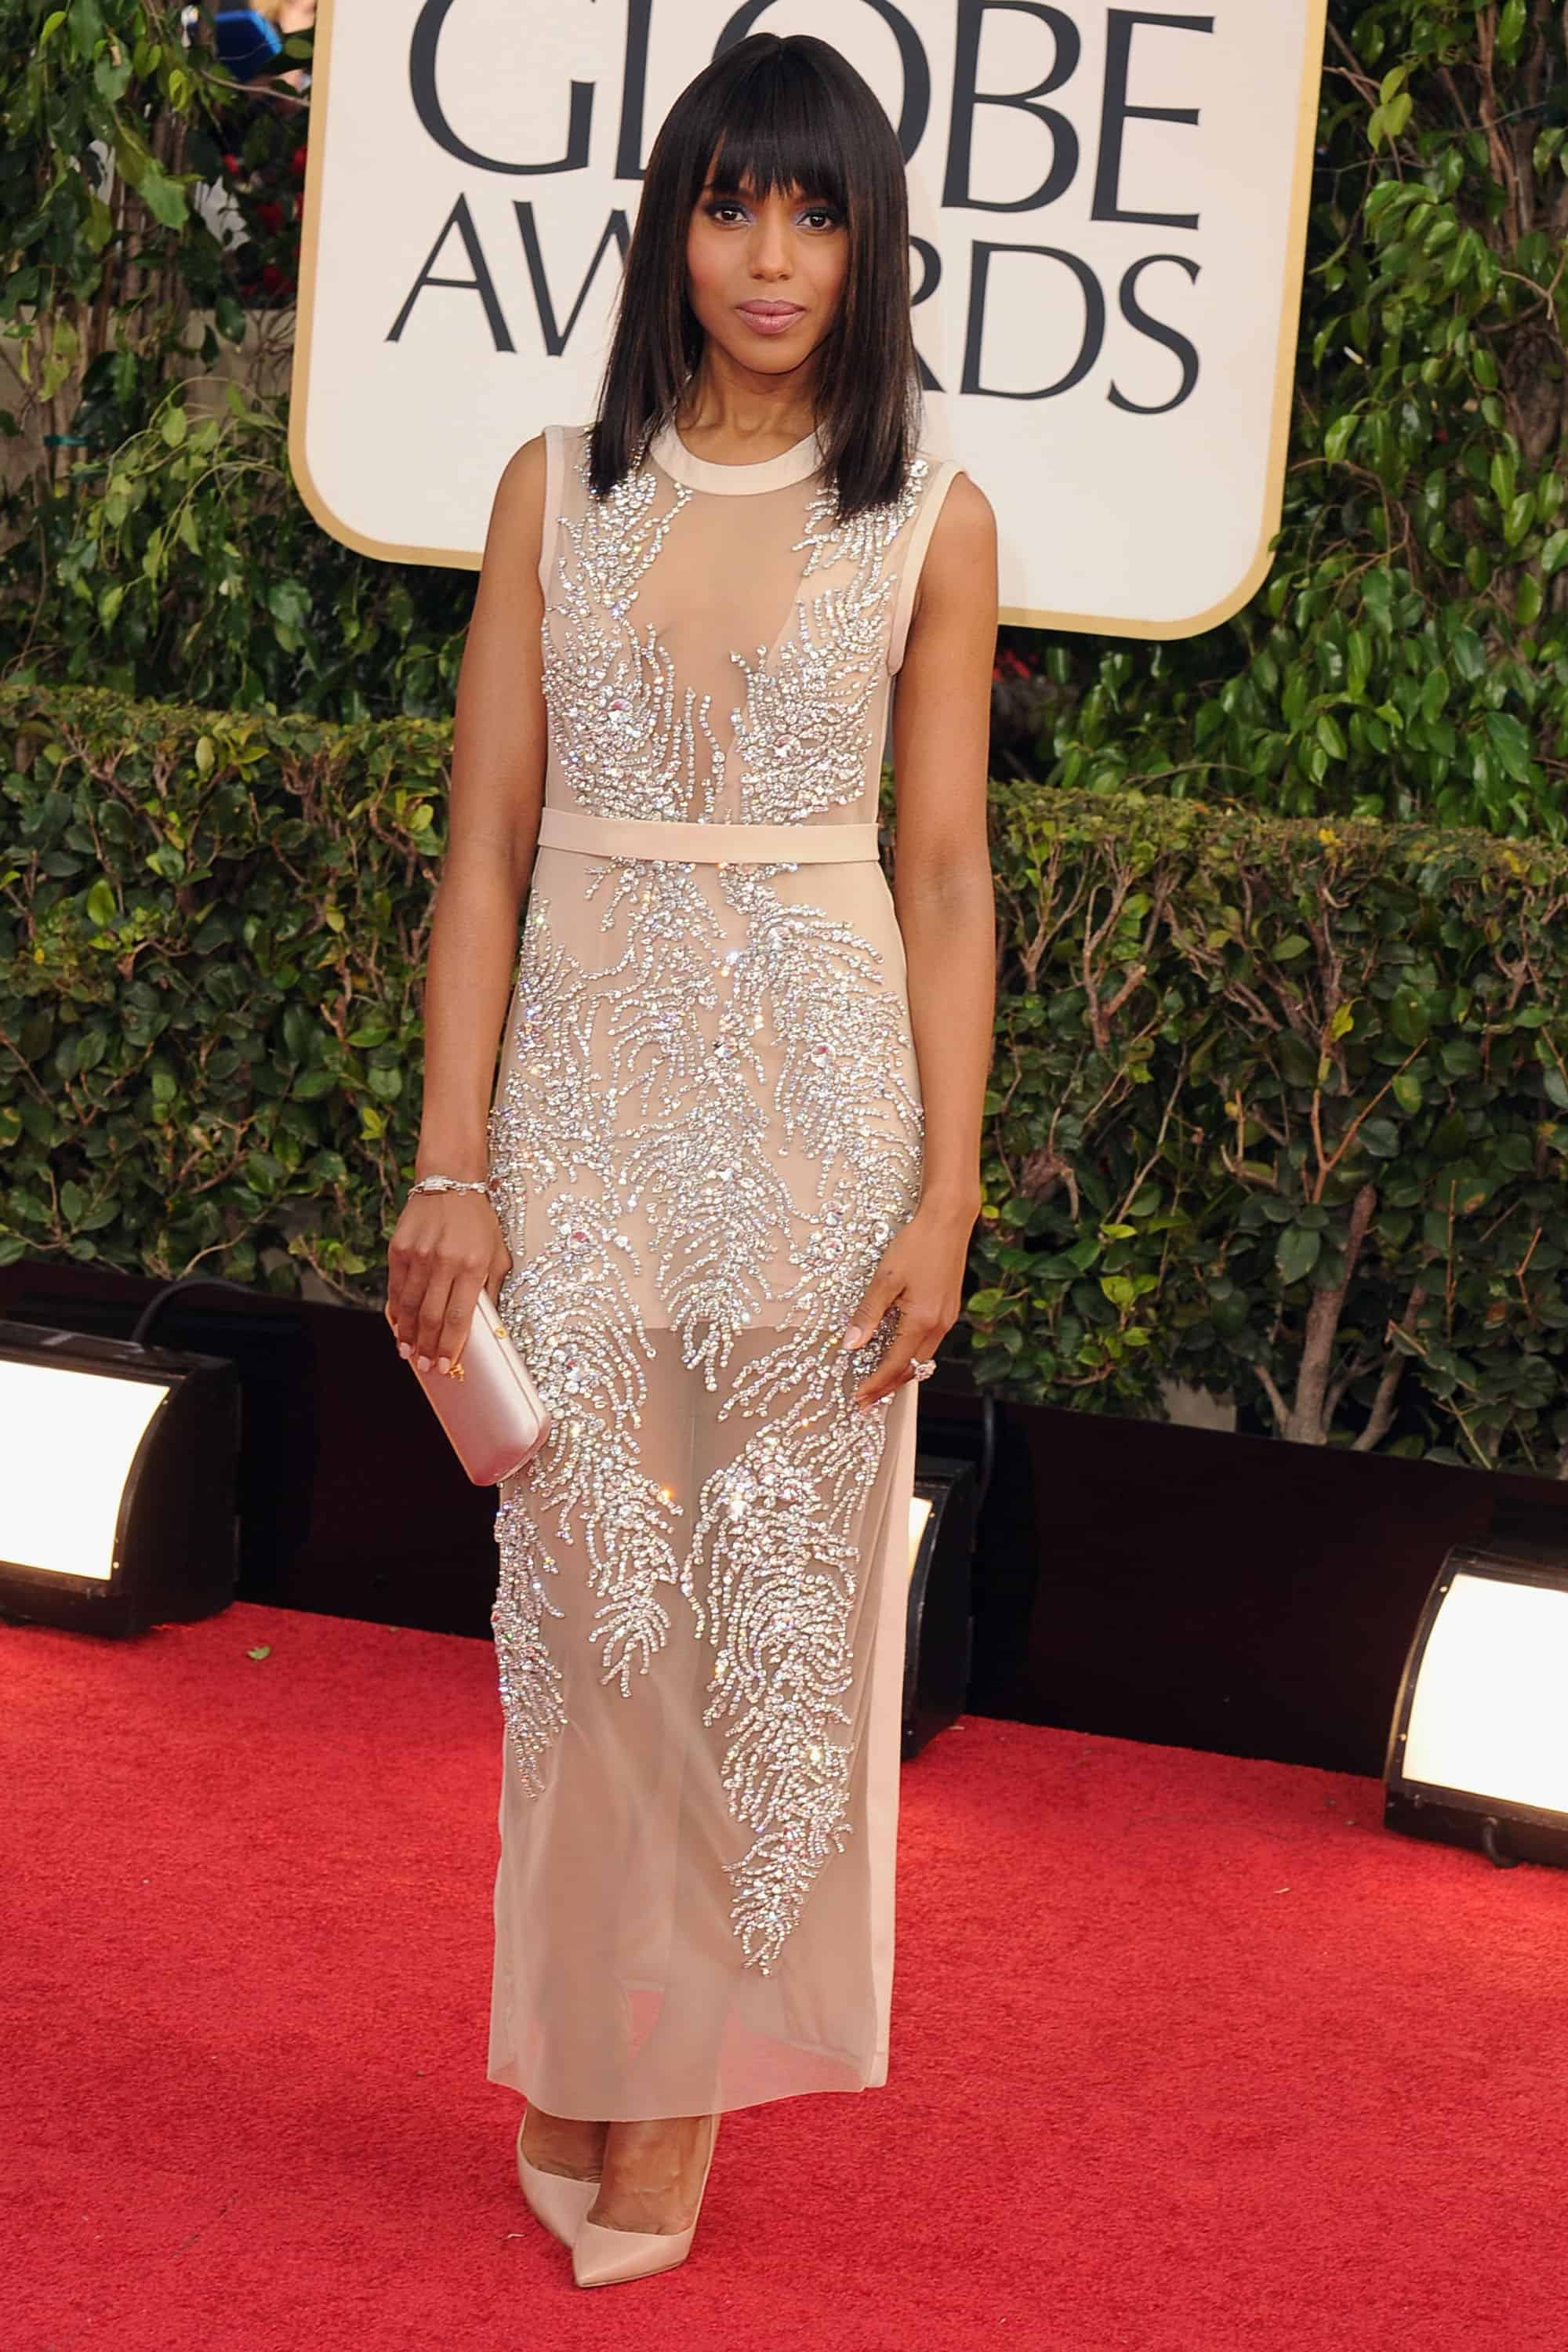 Golden globes 2013 red carpet dresses makeup who was best worst fashion tag blog - Golden globes red carpet ...